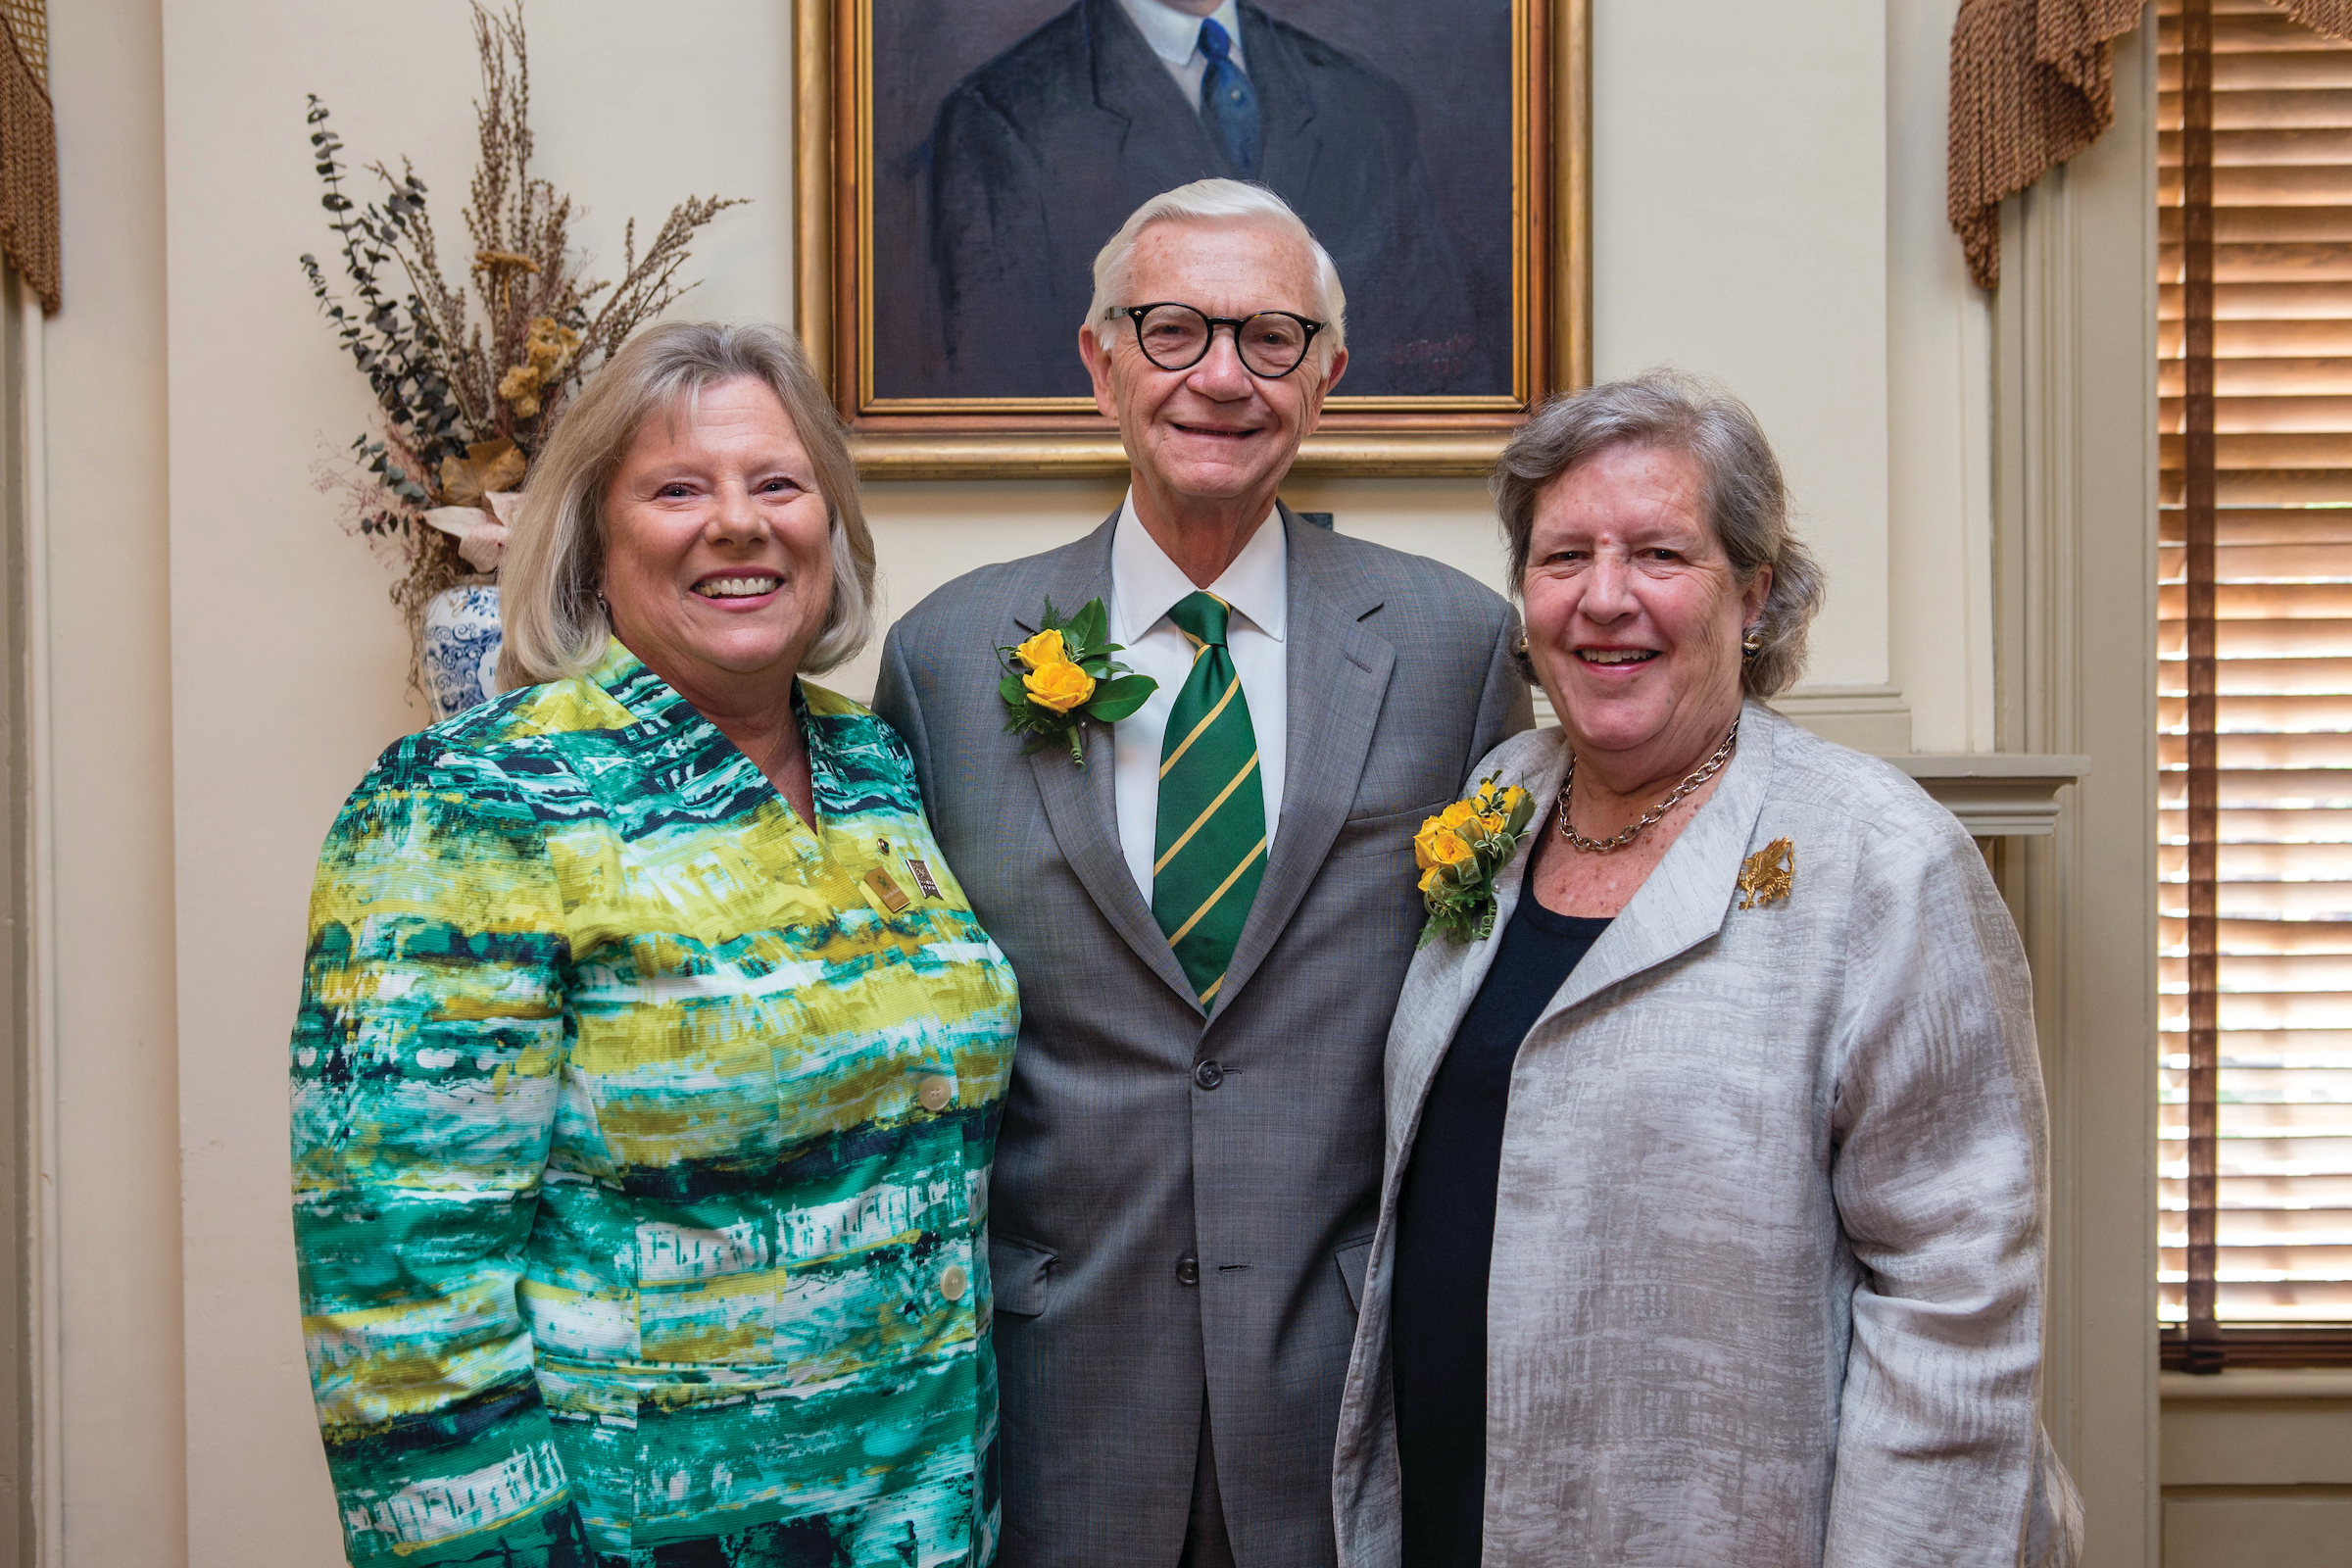 Cindy Satterwhite Jarboe '77, P '11 welcomes President Emeritus W. Taylor Reveley, III LL.D. '18 and Helen Bond Reveley as honorary alumni.